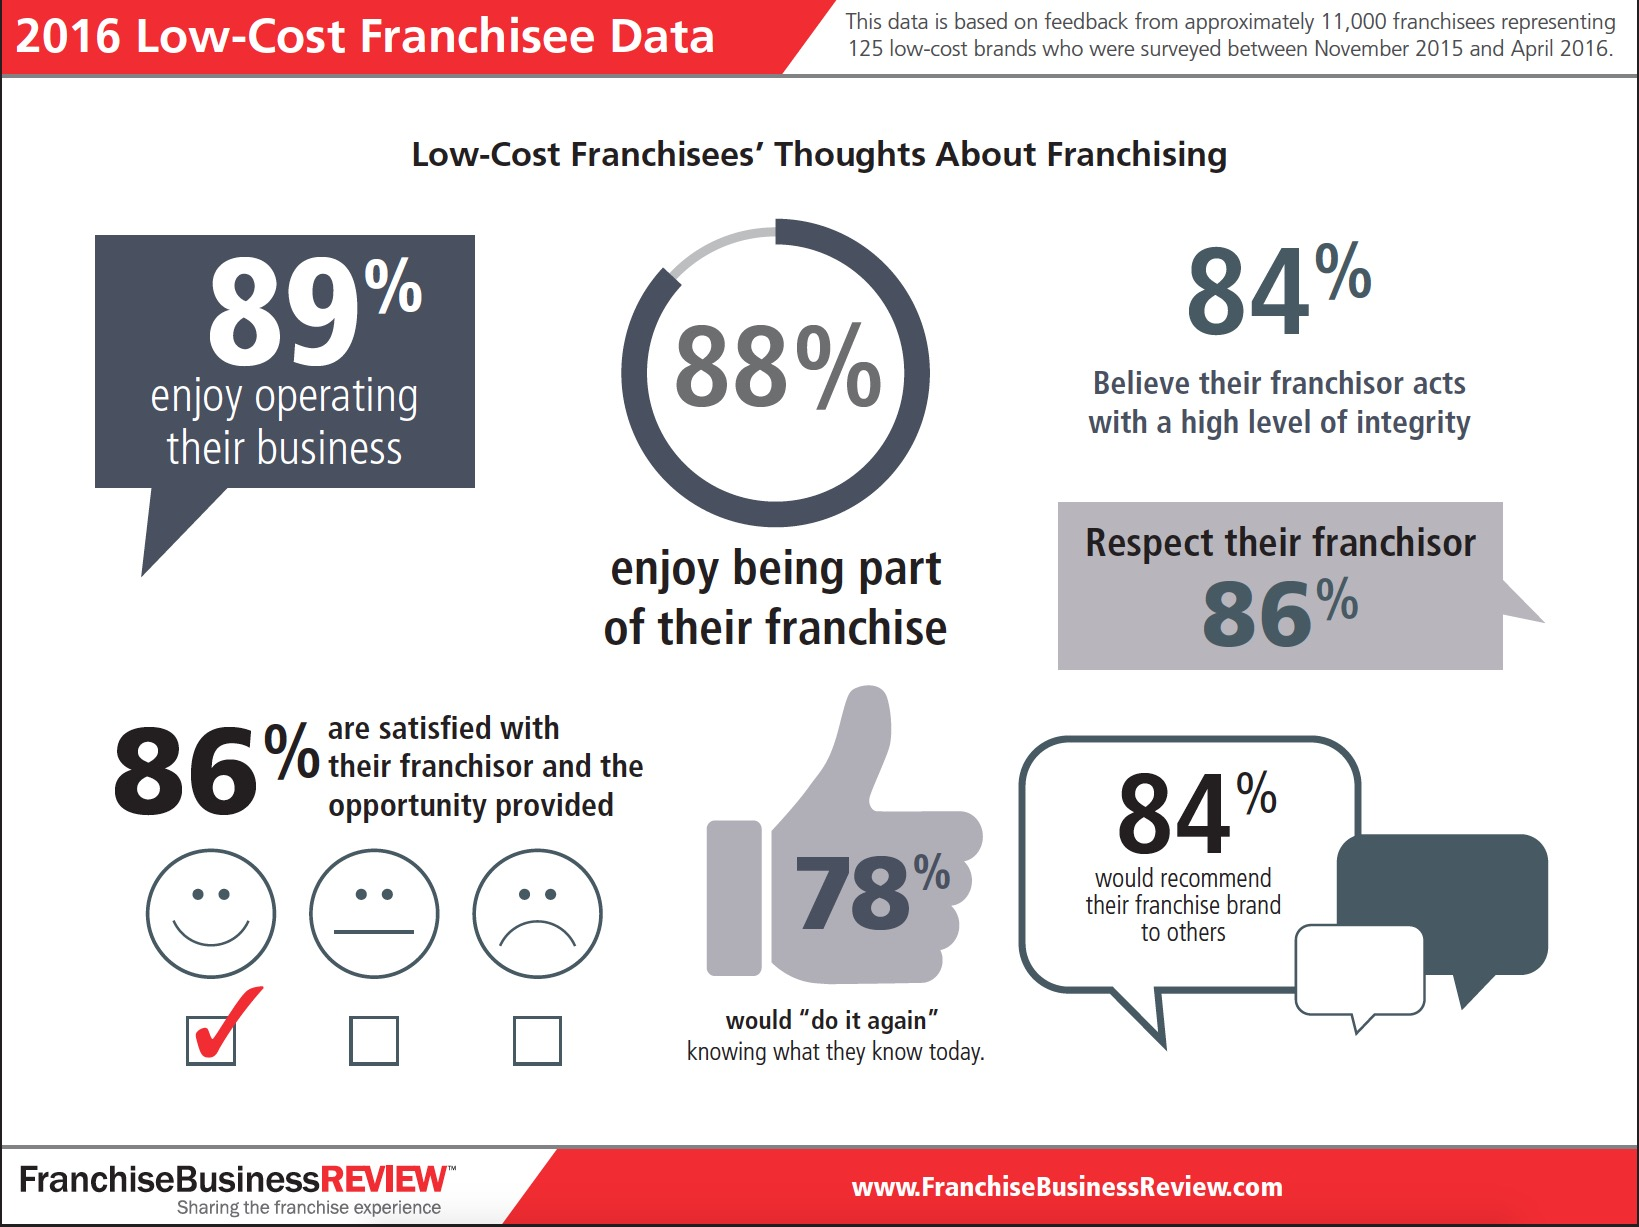 Infographic: 2016 Low-Cost Franchisee Data